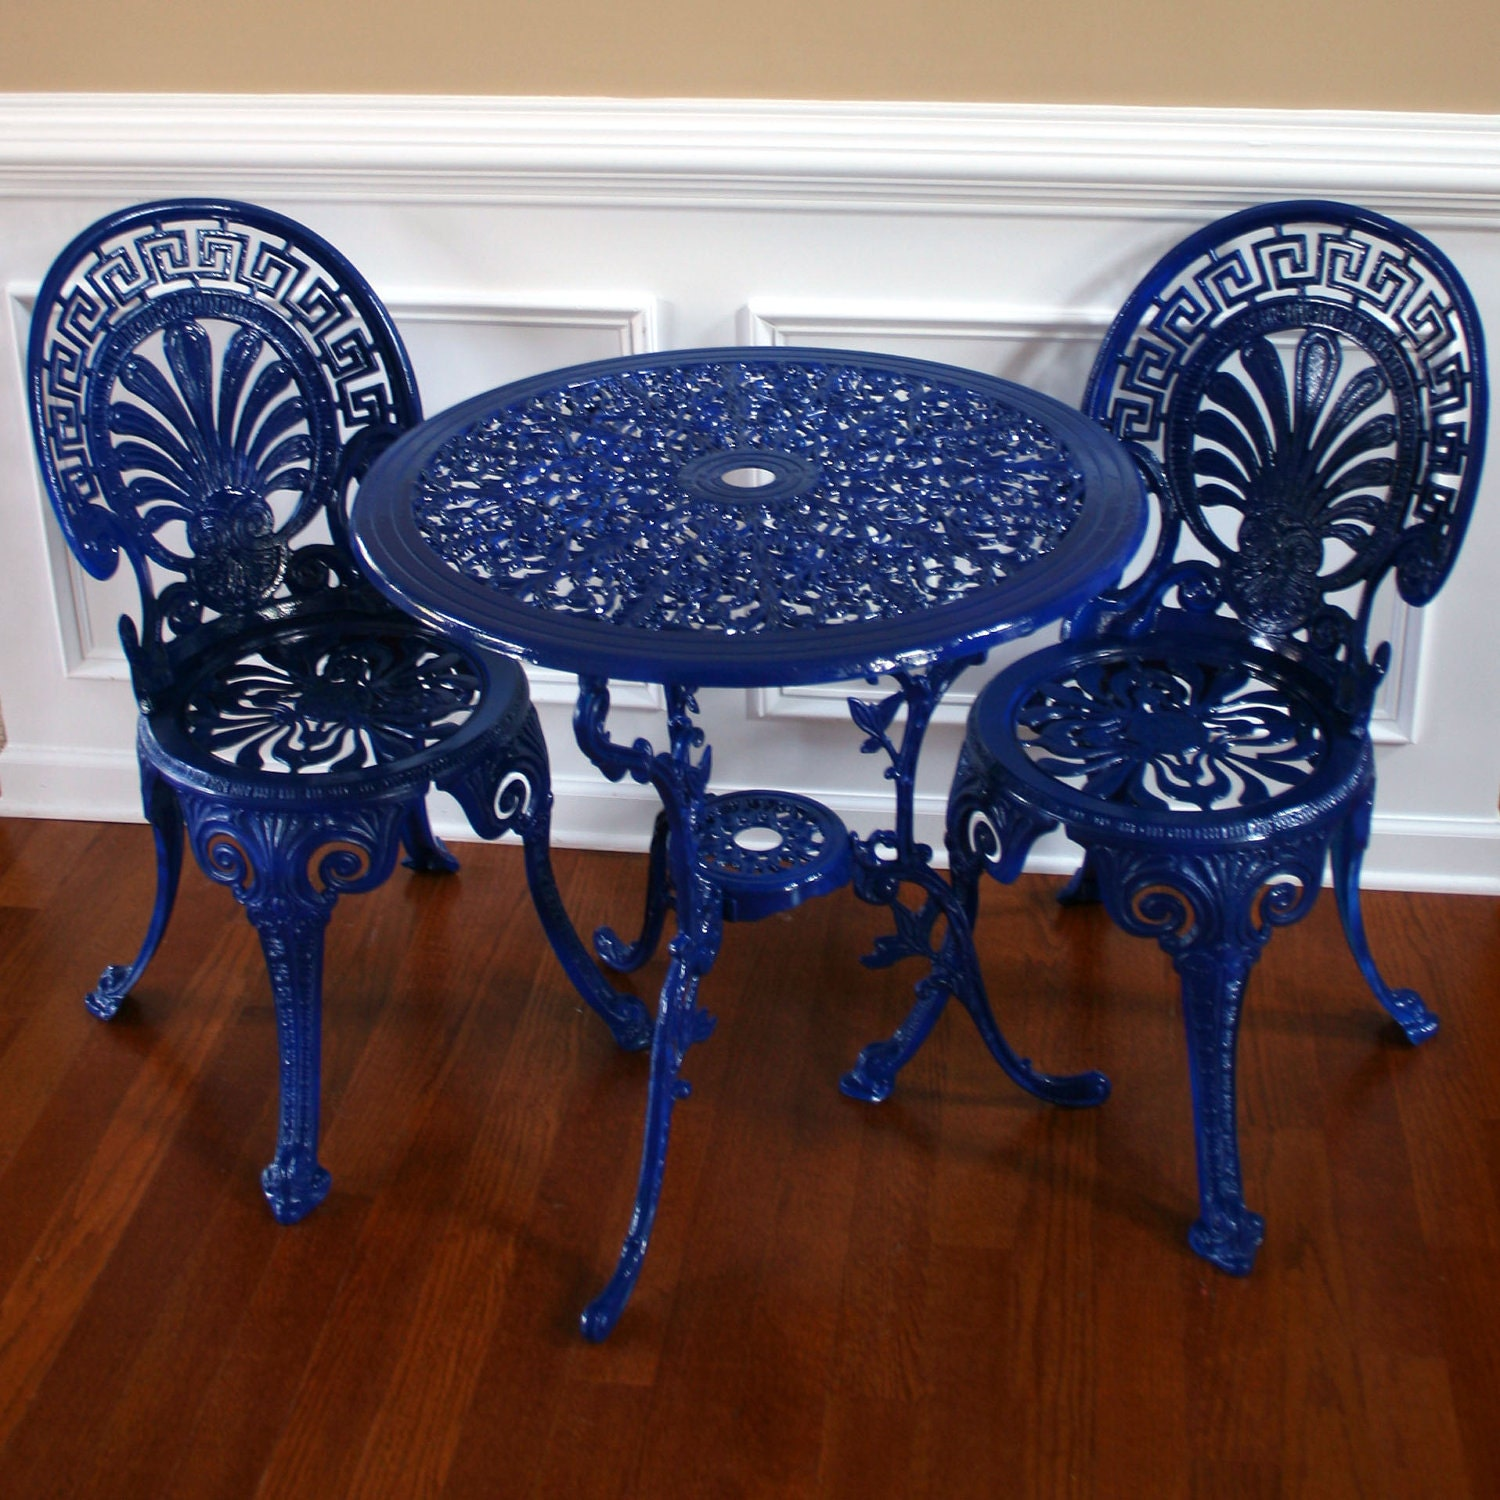 Chinoiserie Blue Vintage Patio Table and Chairs by  : ilfullxfull264776156 from www.etsy.com size 1500 x 1500 jpeg 448kB